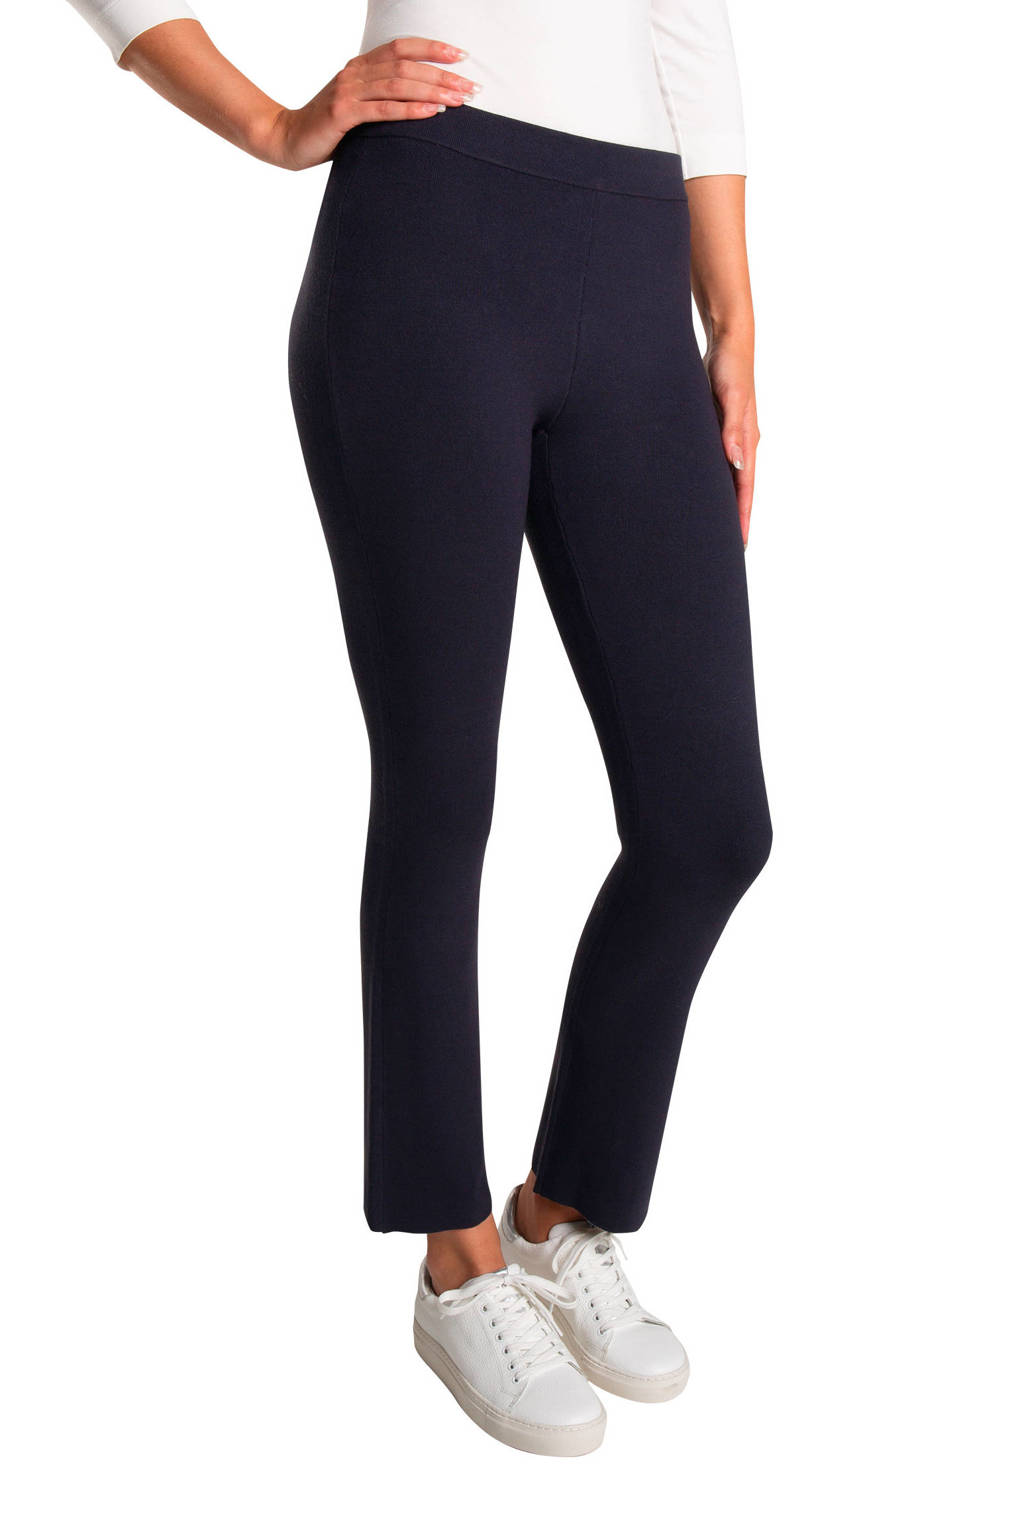 Claudia Sträter flared legging donkerblauw, Donkerblauw